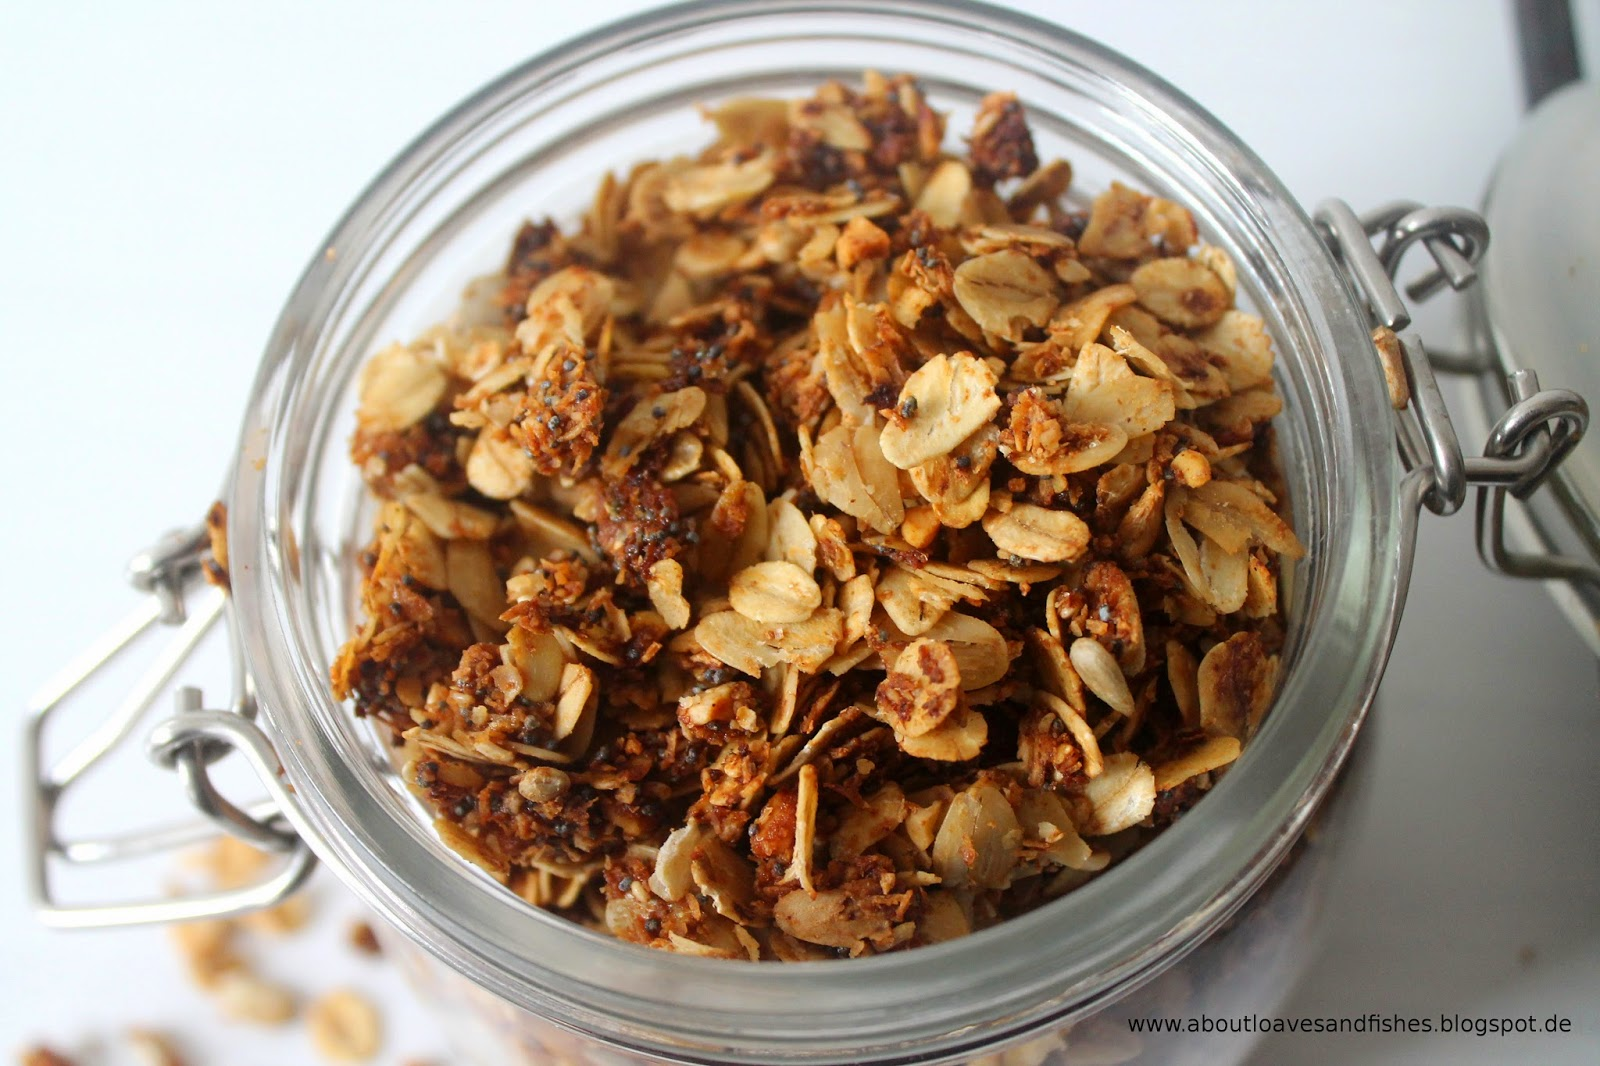 Selbstgemachtes Mohn-Granola